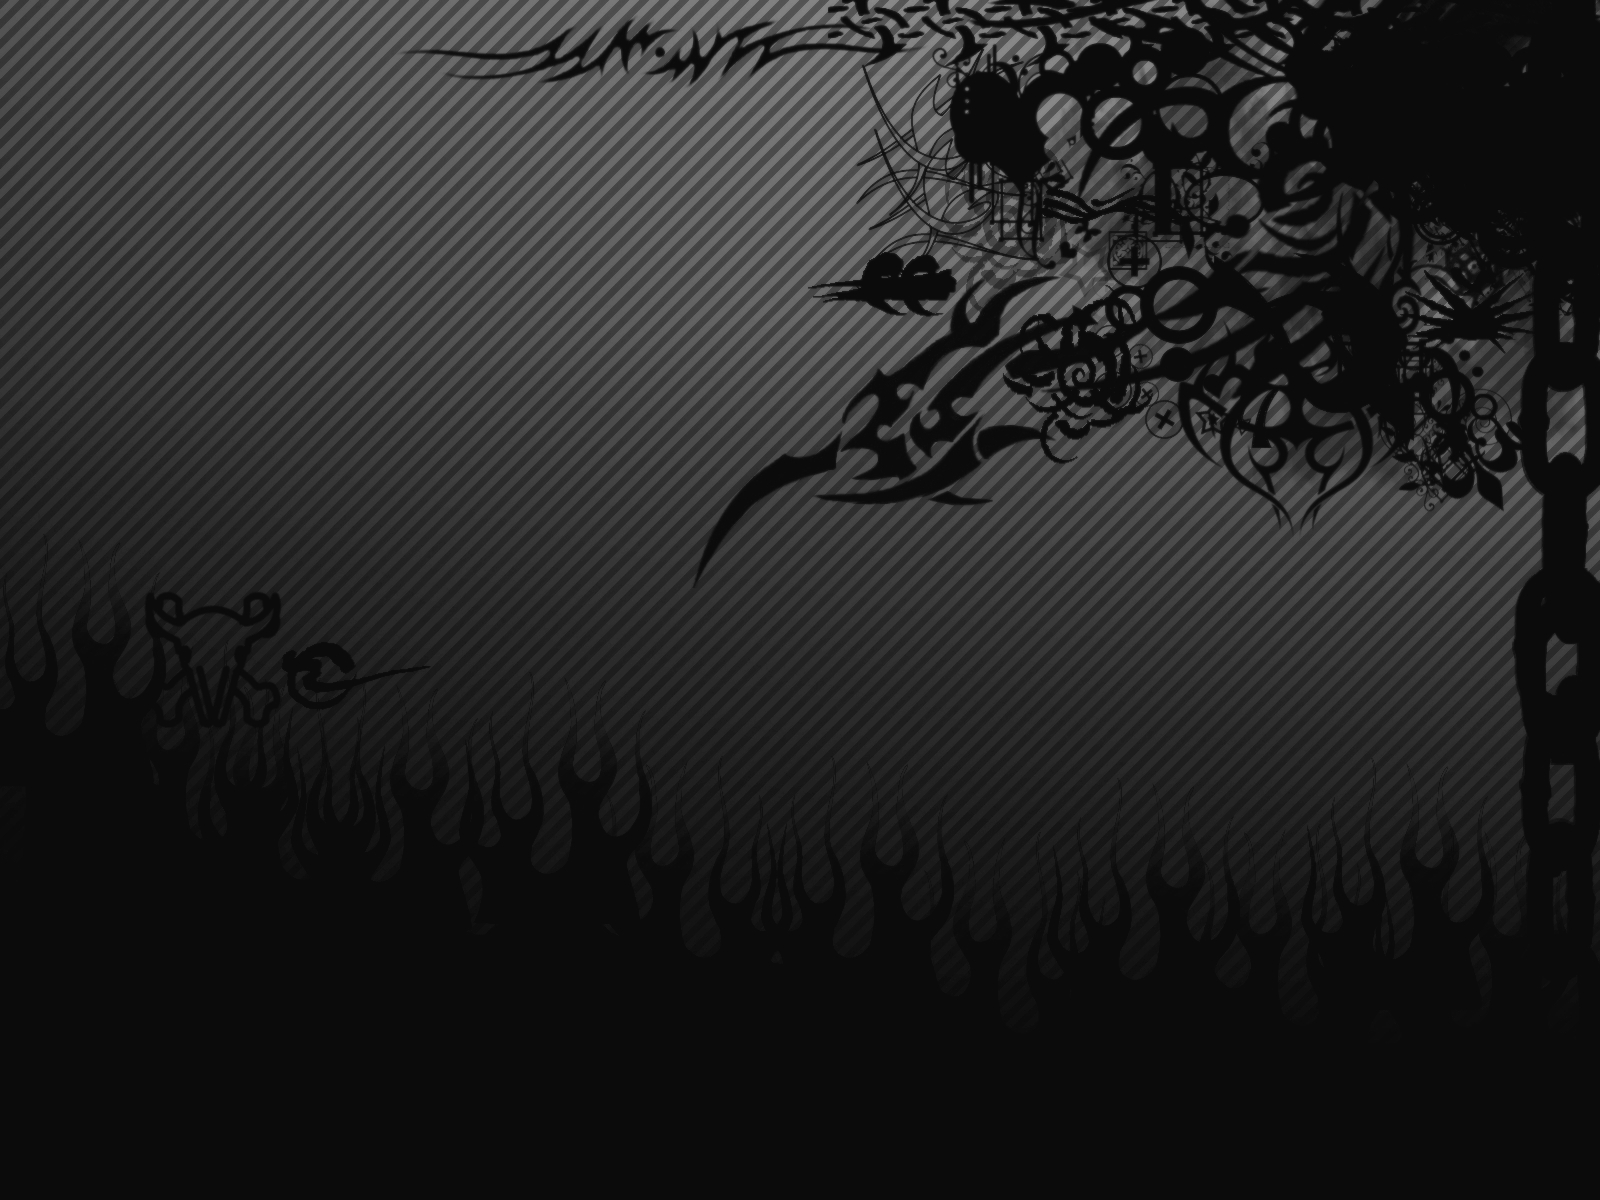 black wallpaper hot black wallpaper black wallpaper hd 3d black 1600x1200